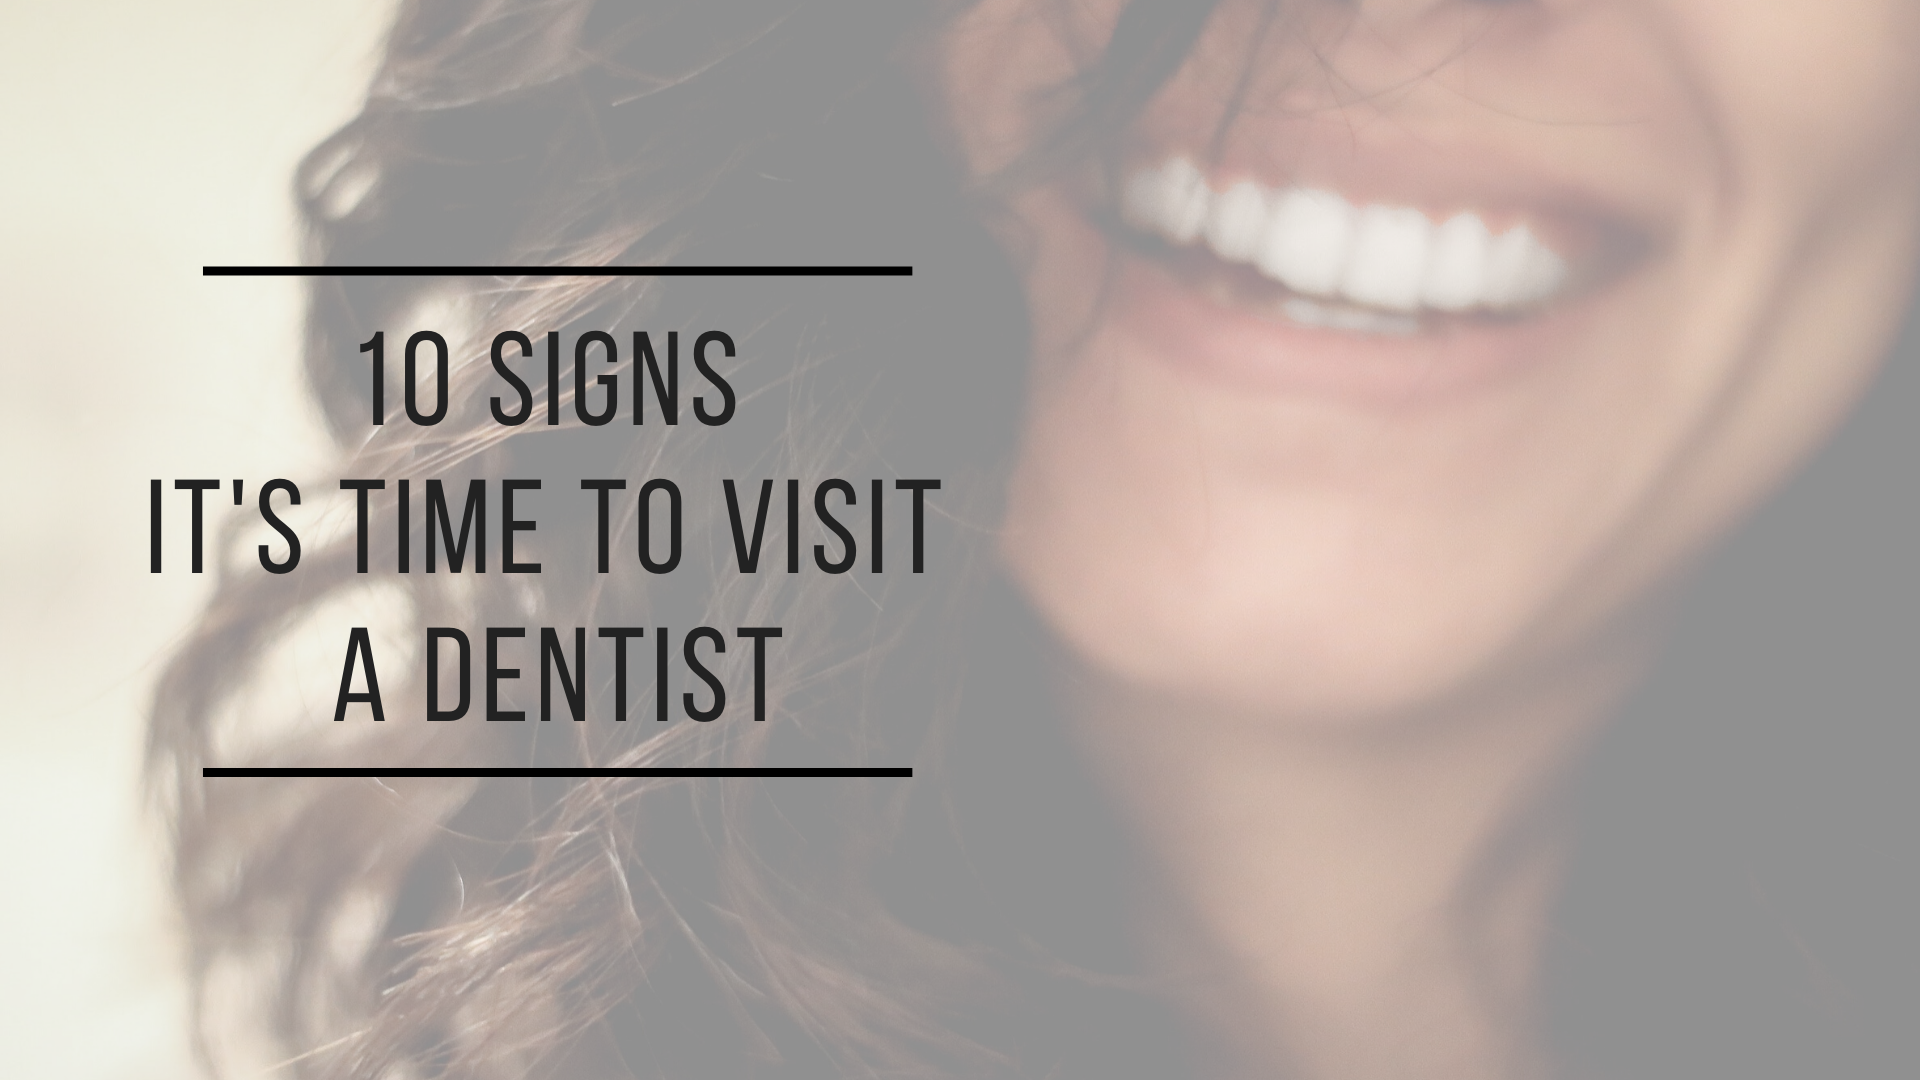 Childersburg Dentist | 10 Signs It's Time To Visit A Dentist